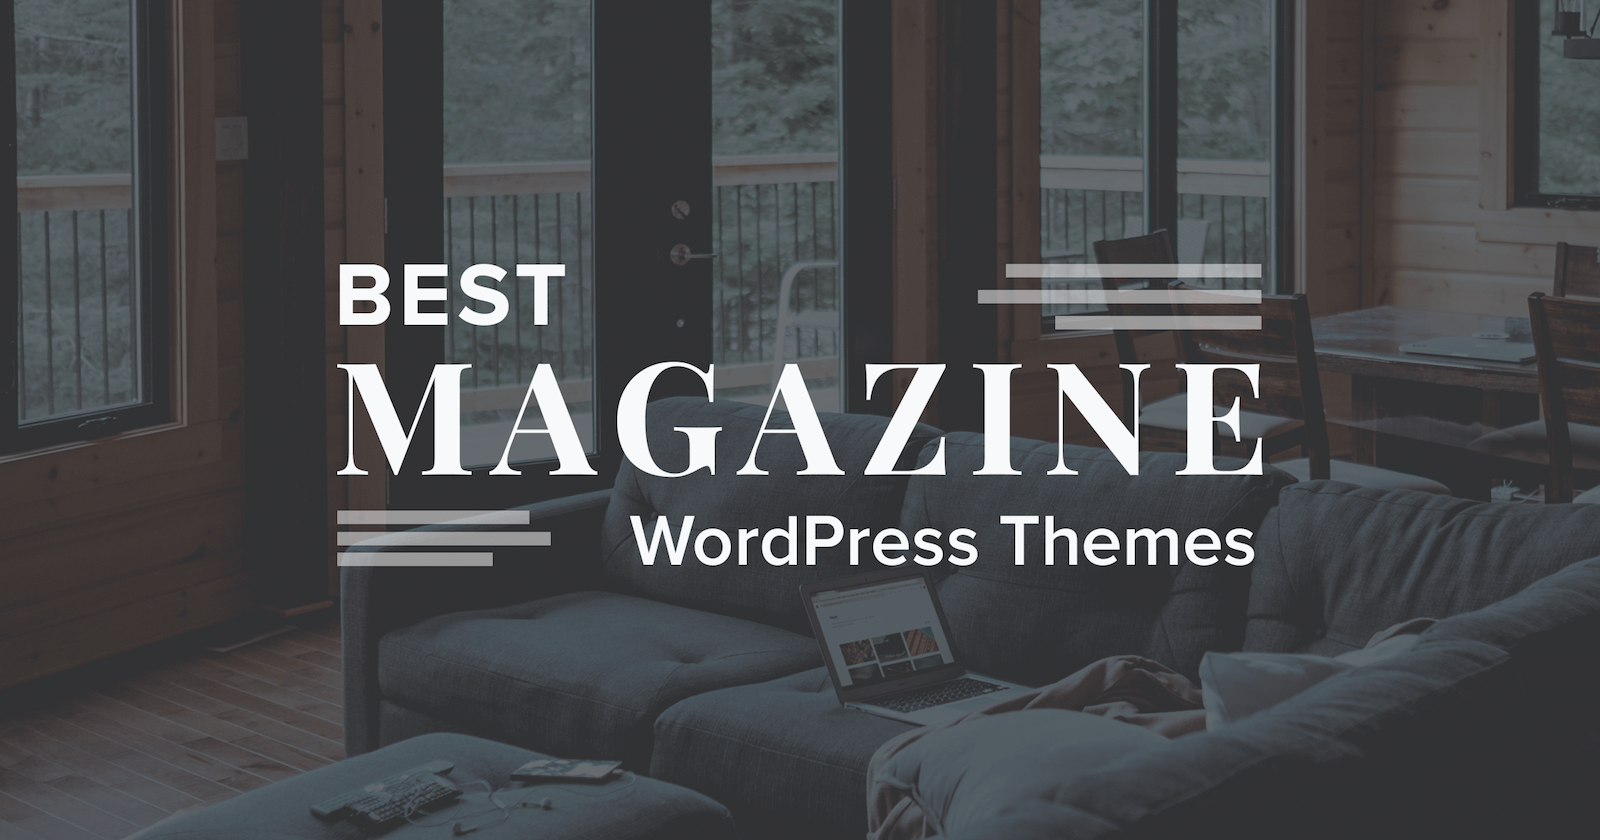 We looked for the best WordPress magazine themes for 2017